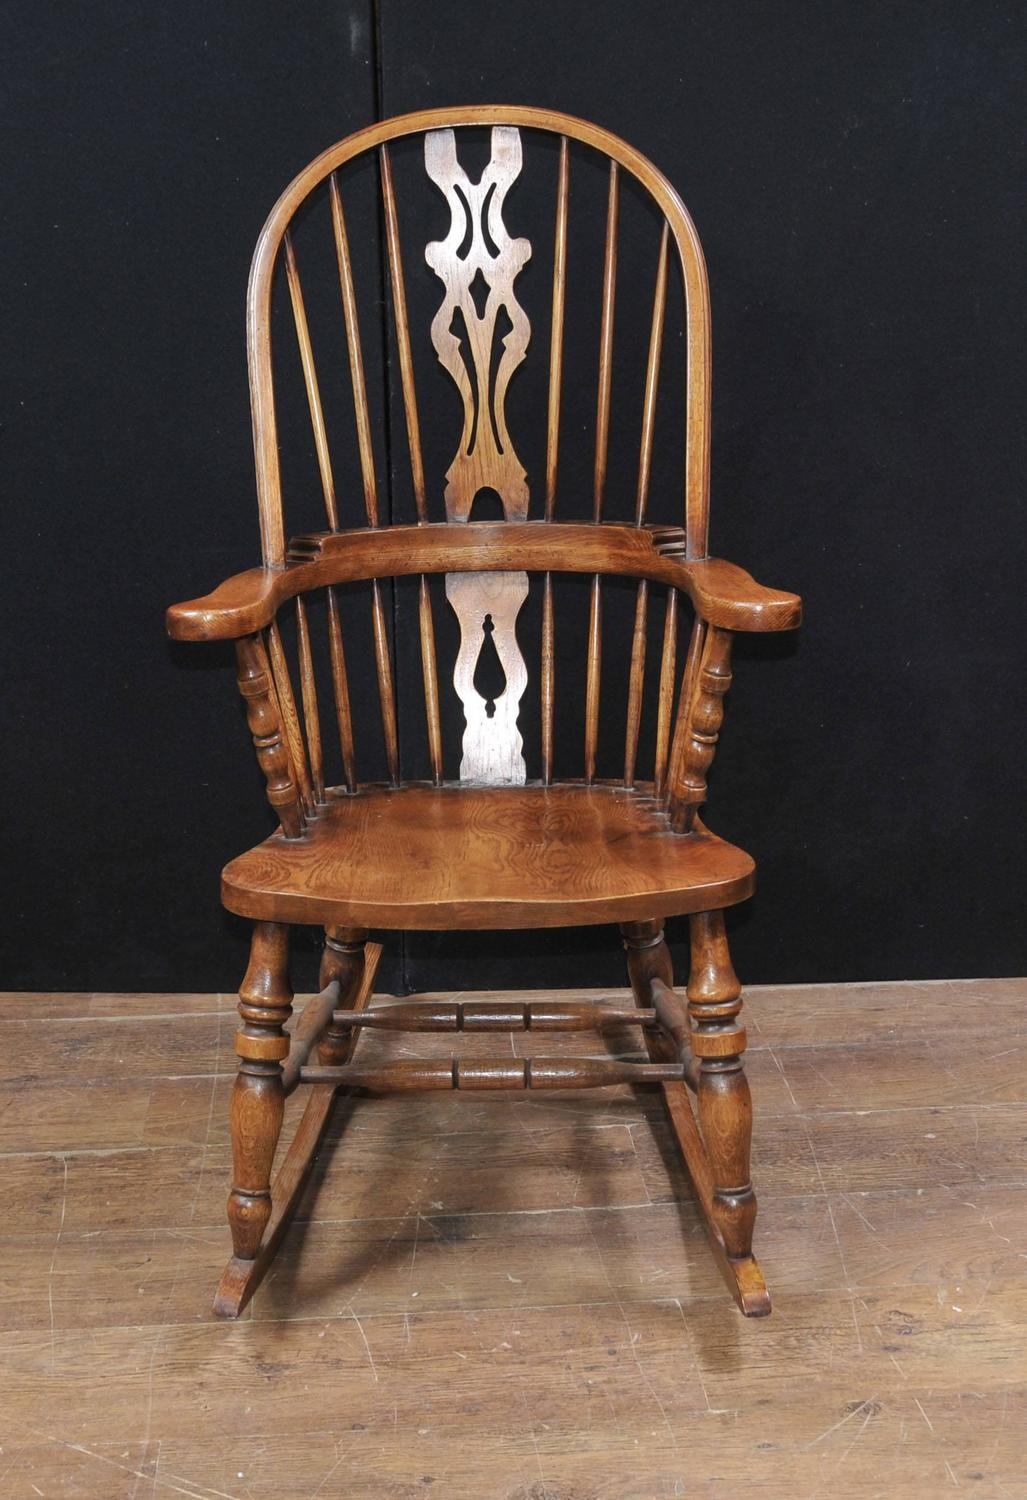 Hand-Carved English Windsor Rocking Chair Farmhouse Chairs For Sale at ...